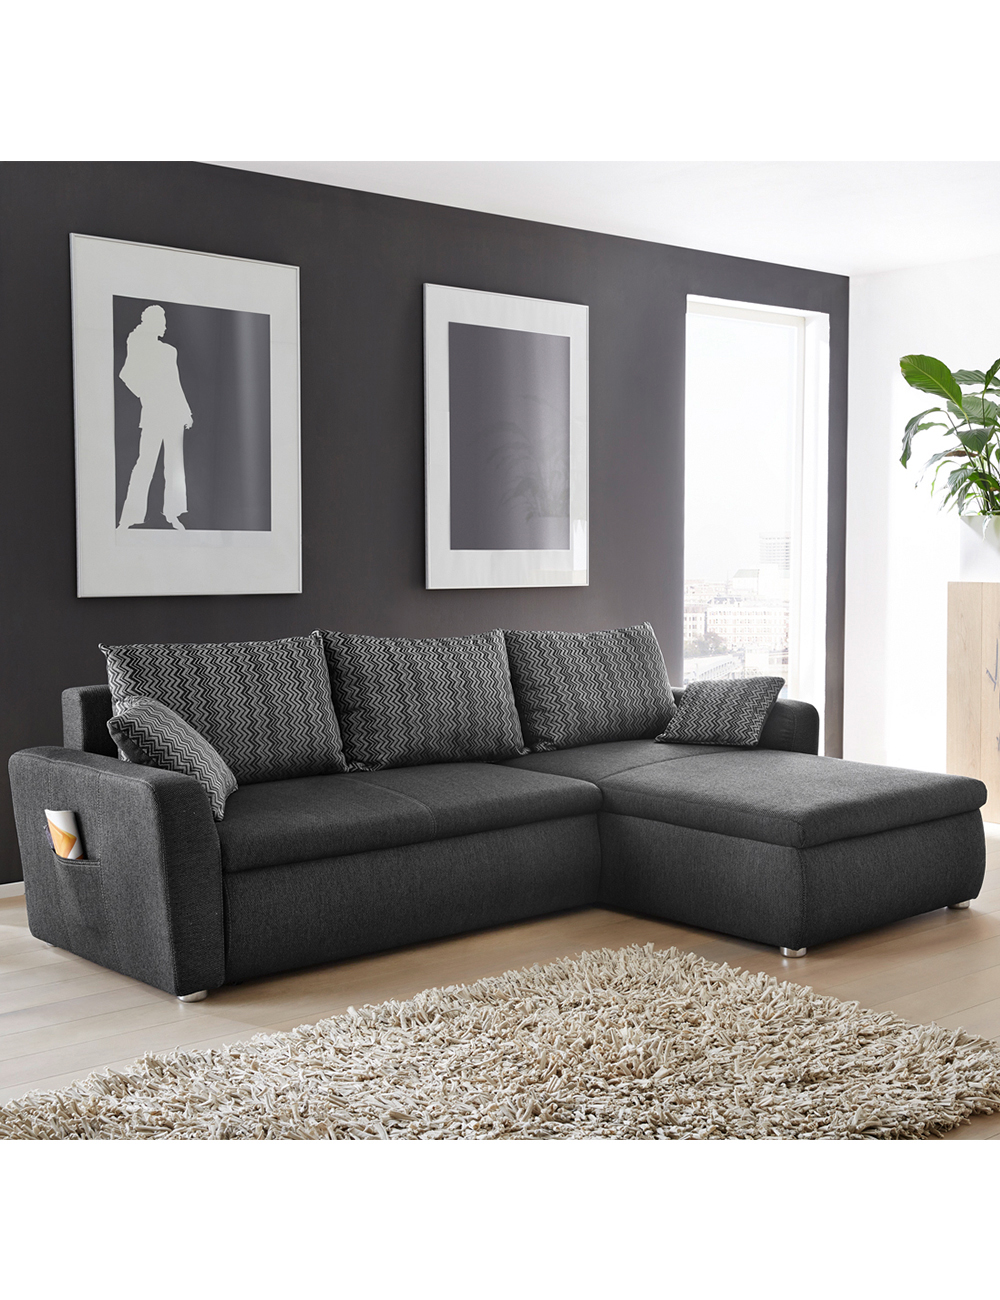 canap lit pancho avec coussins dossier. Black Bedroom Furniture Sets. Home Design Ideas